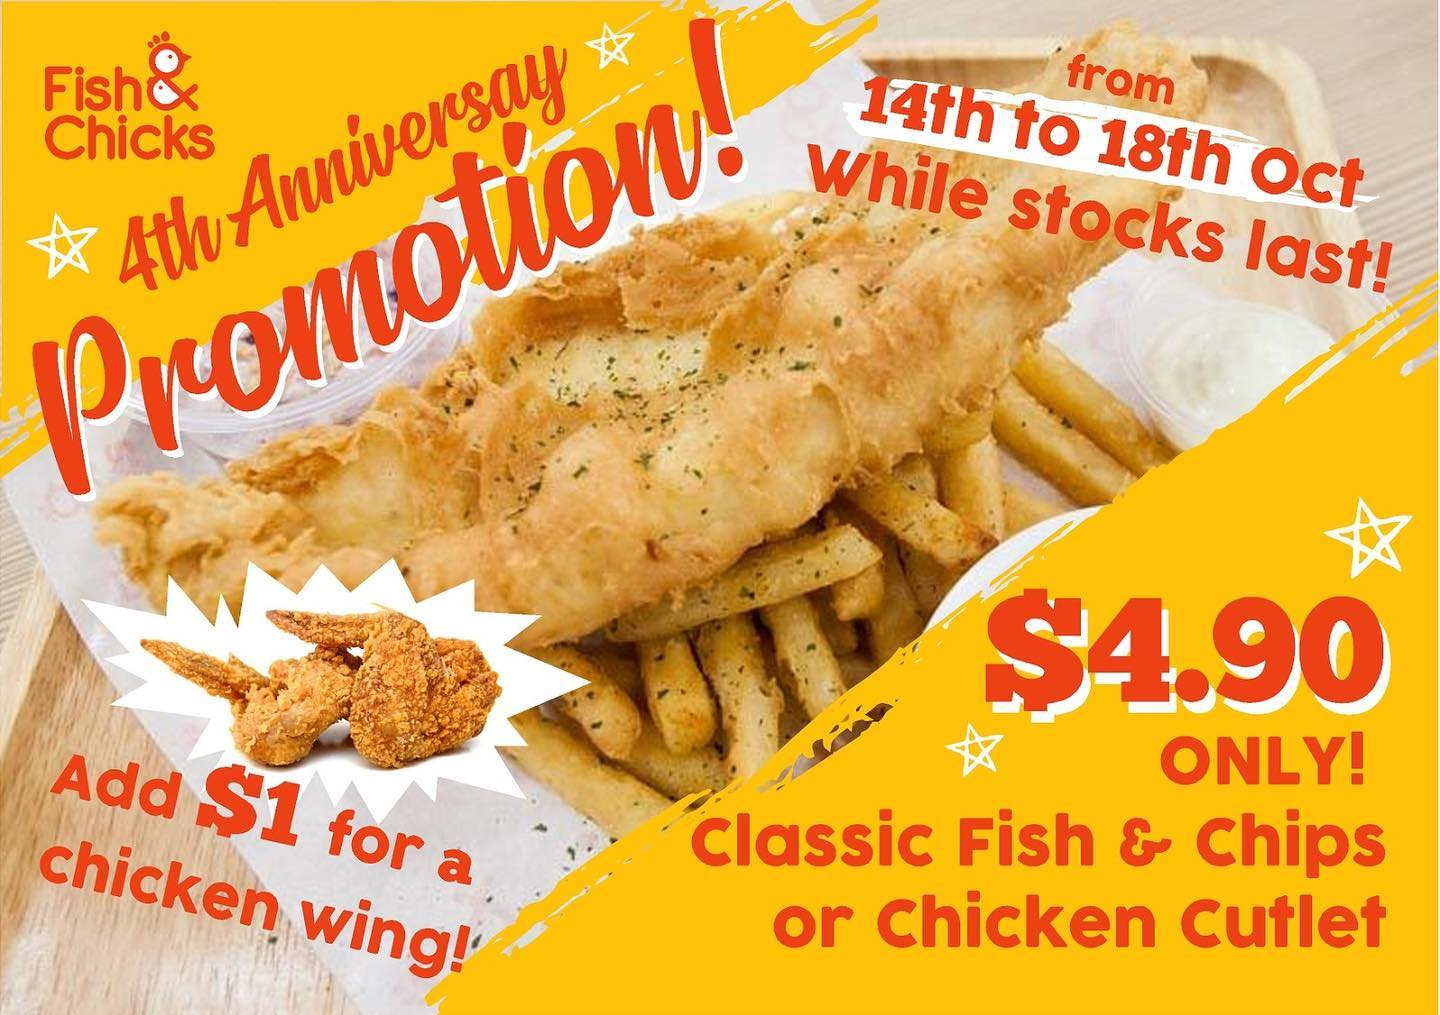 Fish & Chicks Singapore 4th Anniversary $4.90 Fish & Chips and Chicken Cutlet Promotion 14-18 Oct 2019   Why Not Deals & Promotions